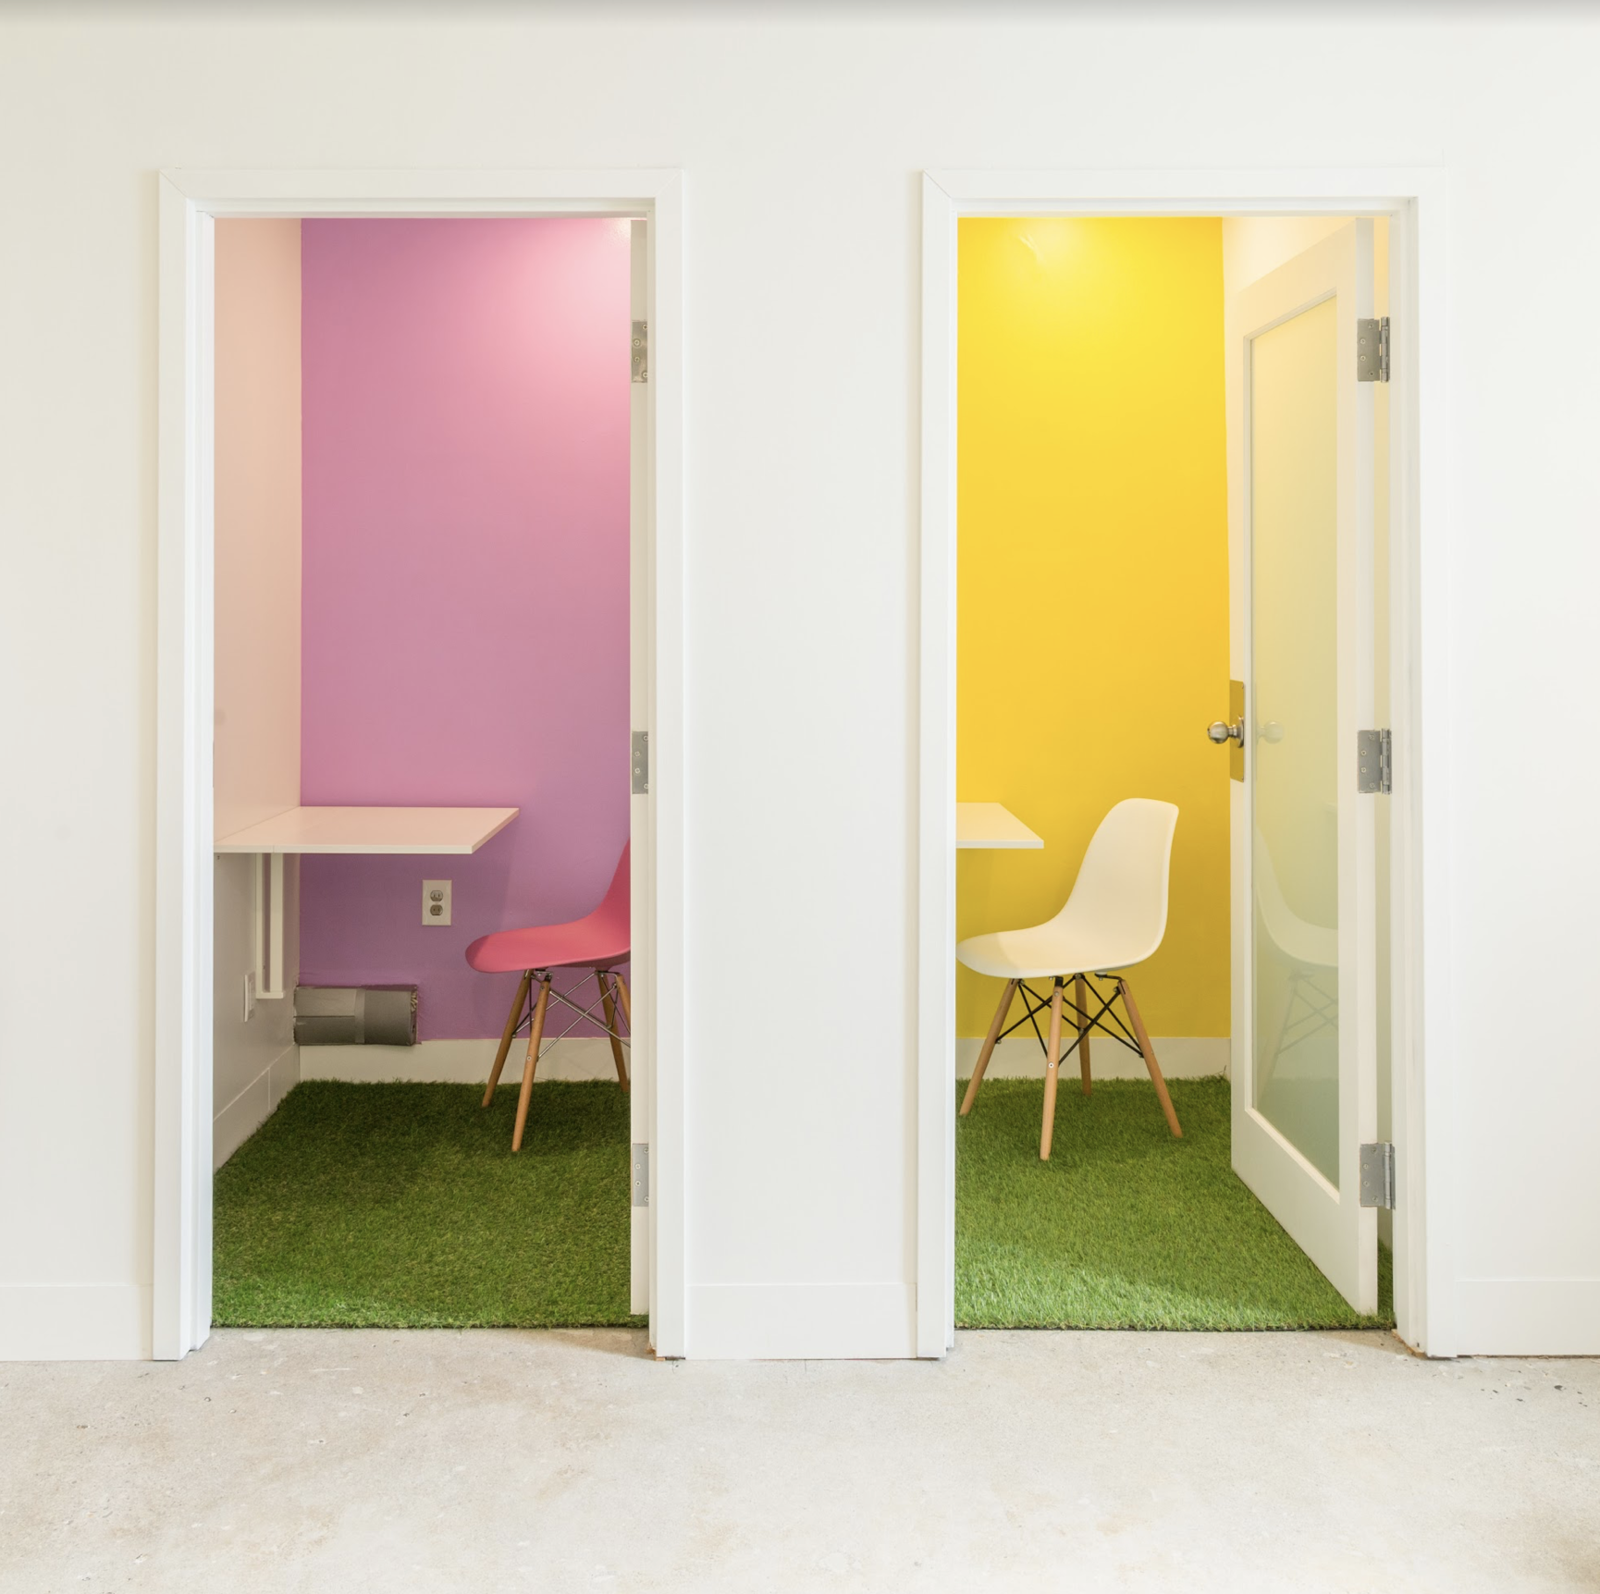 Office, Concrete Floor, and Chair Private photo booths allow privacy for Skype and conference calls.    Photo 9 of 17 in 6 Co-Working Clubs Catered to Women That Radiate Good Vibes and Beautiful Designs